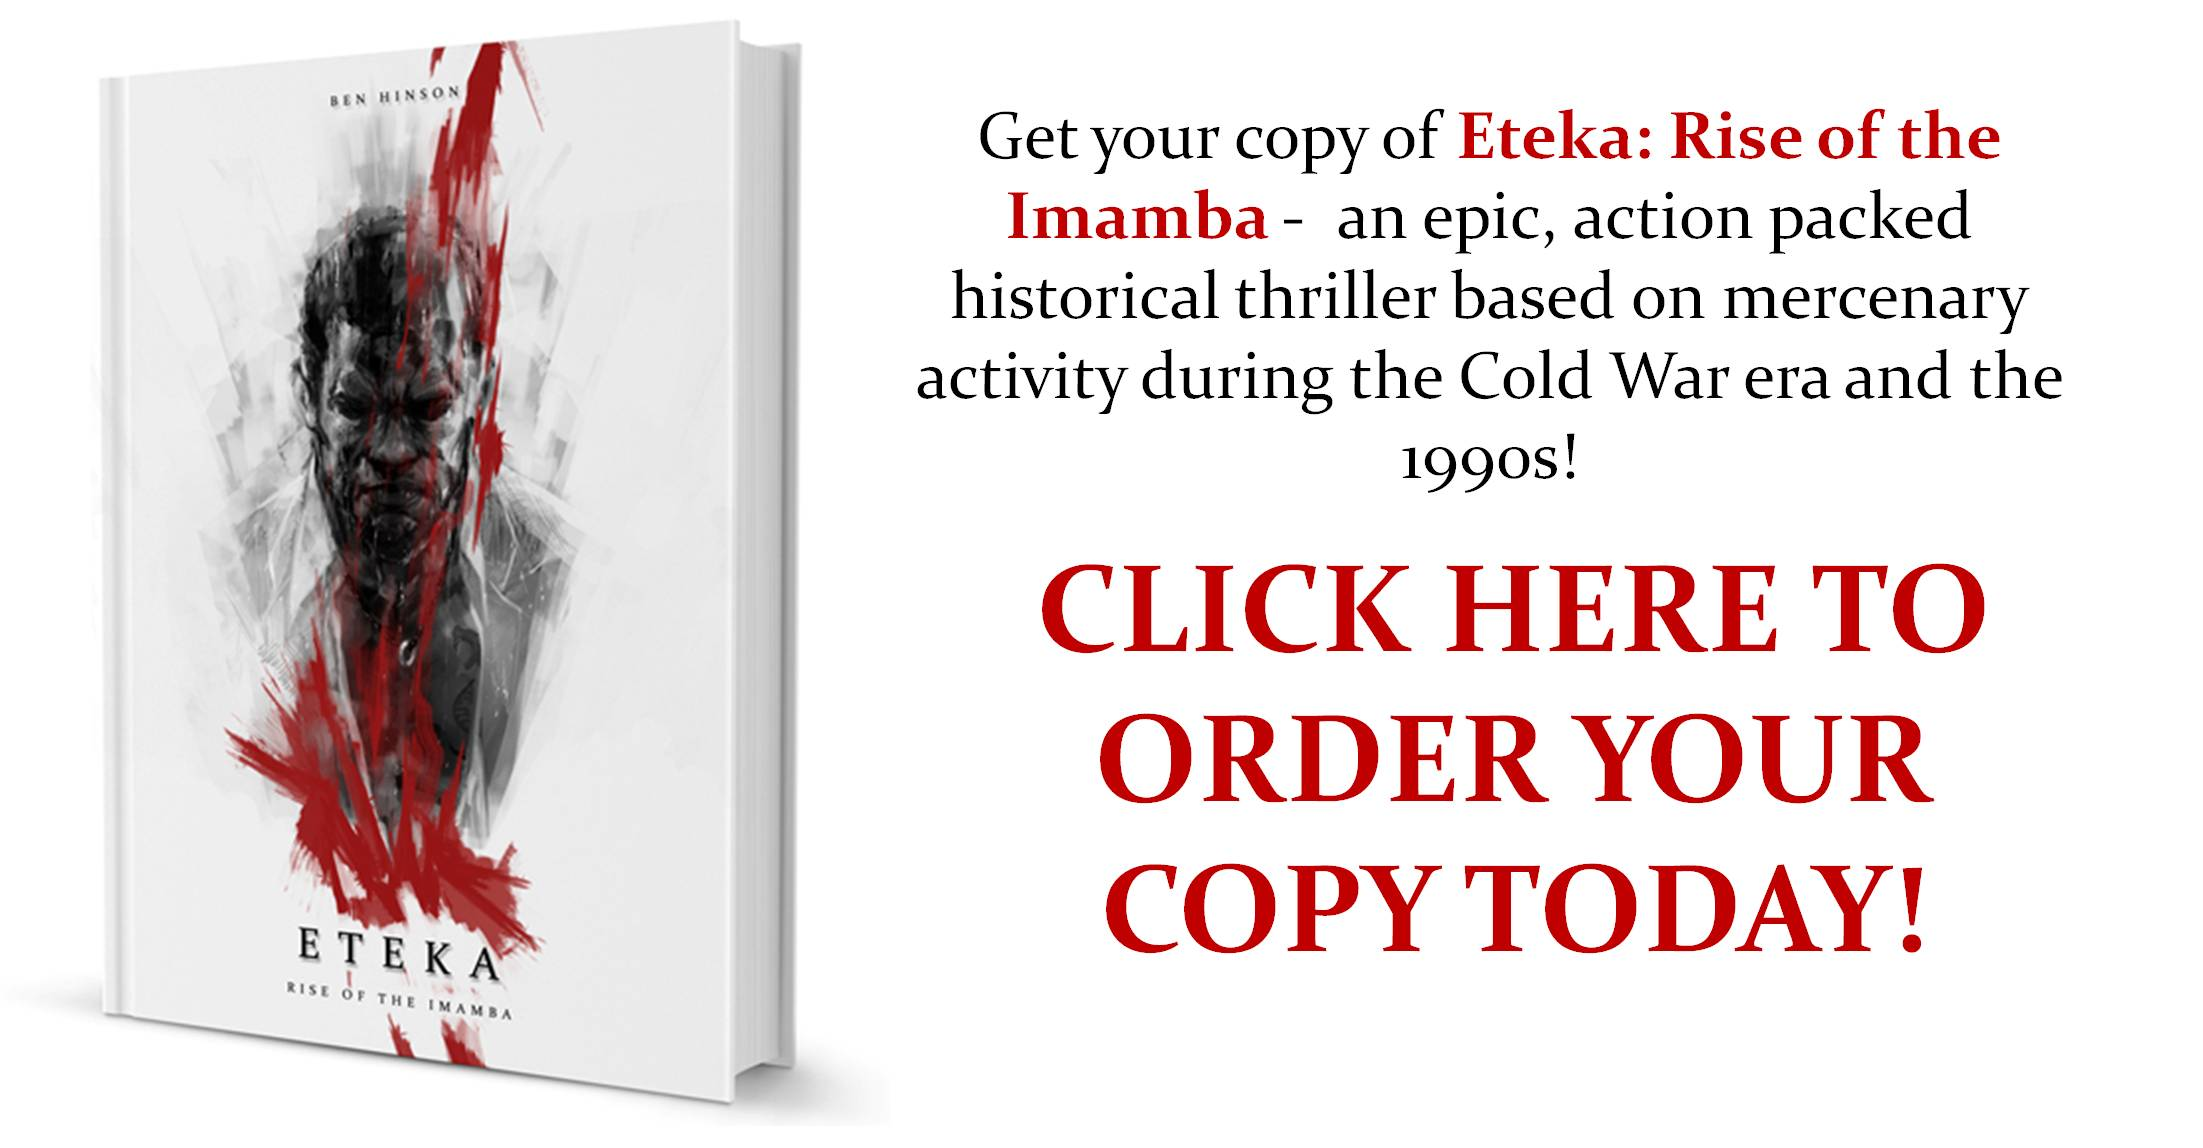 Click here to order your copy of Eteka: Rise of the Imamba!